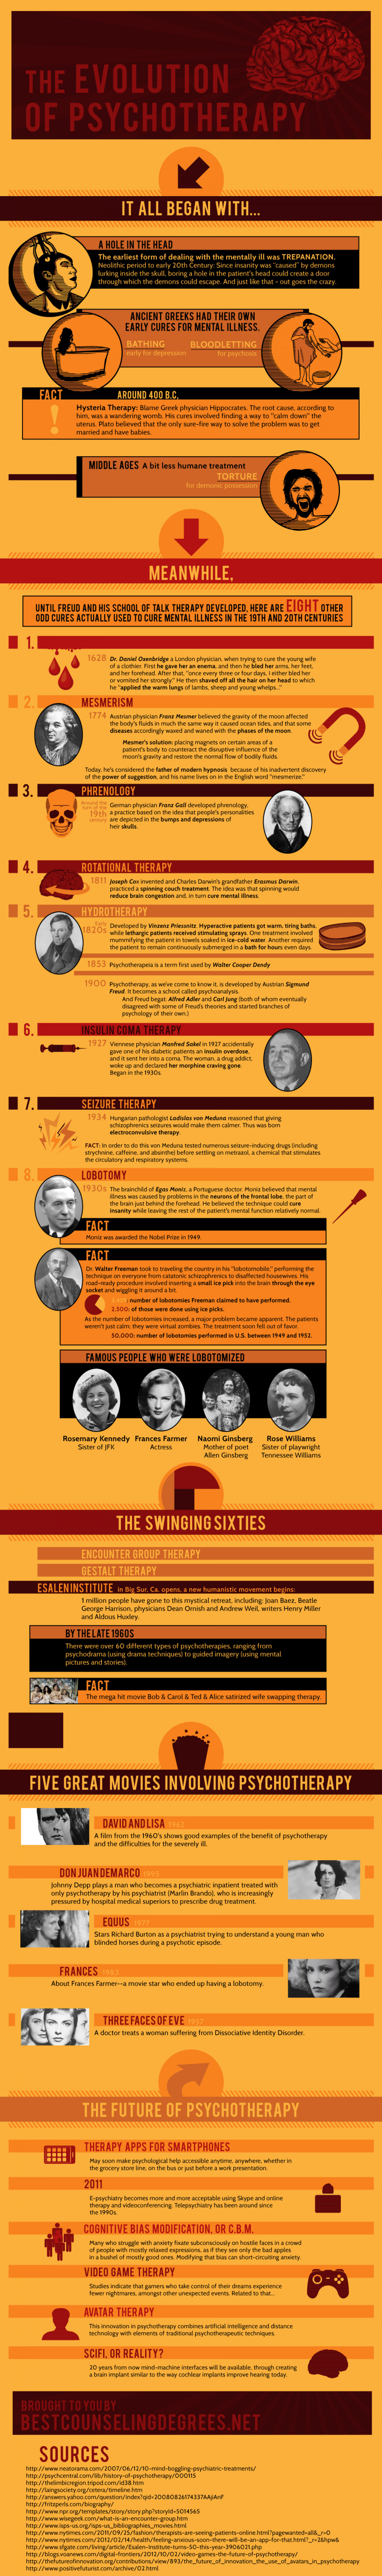 The Evolution of Psychotherapy Infographic